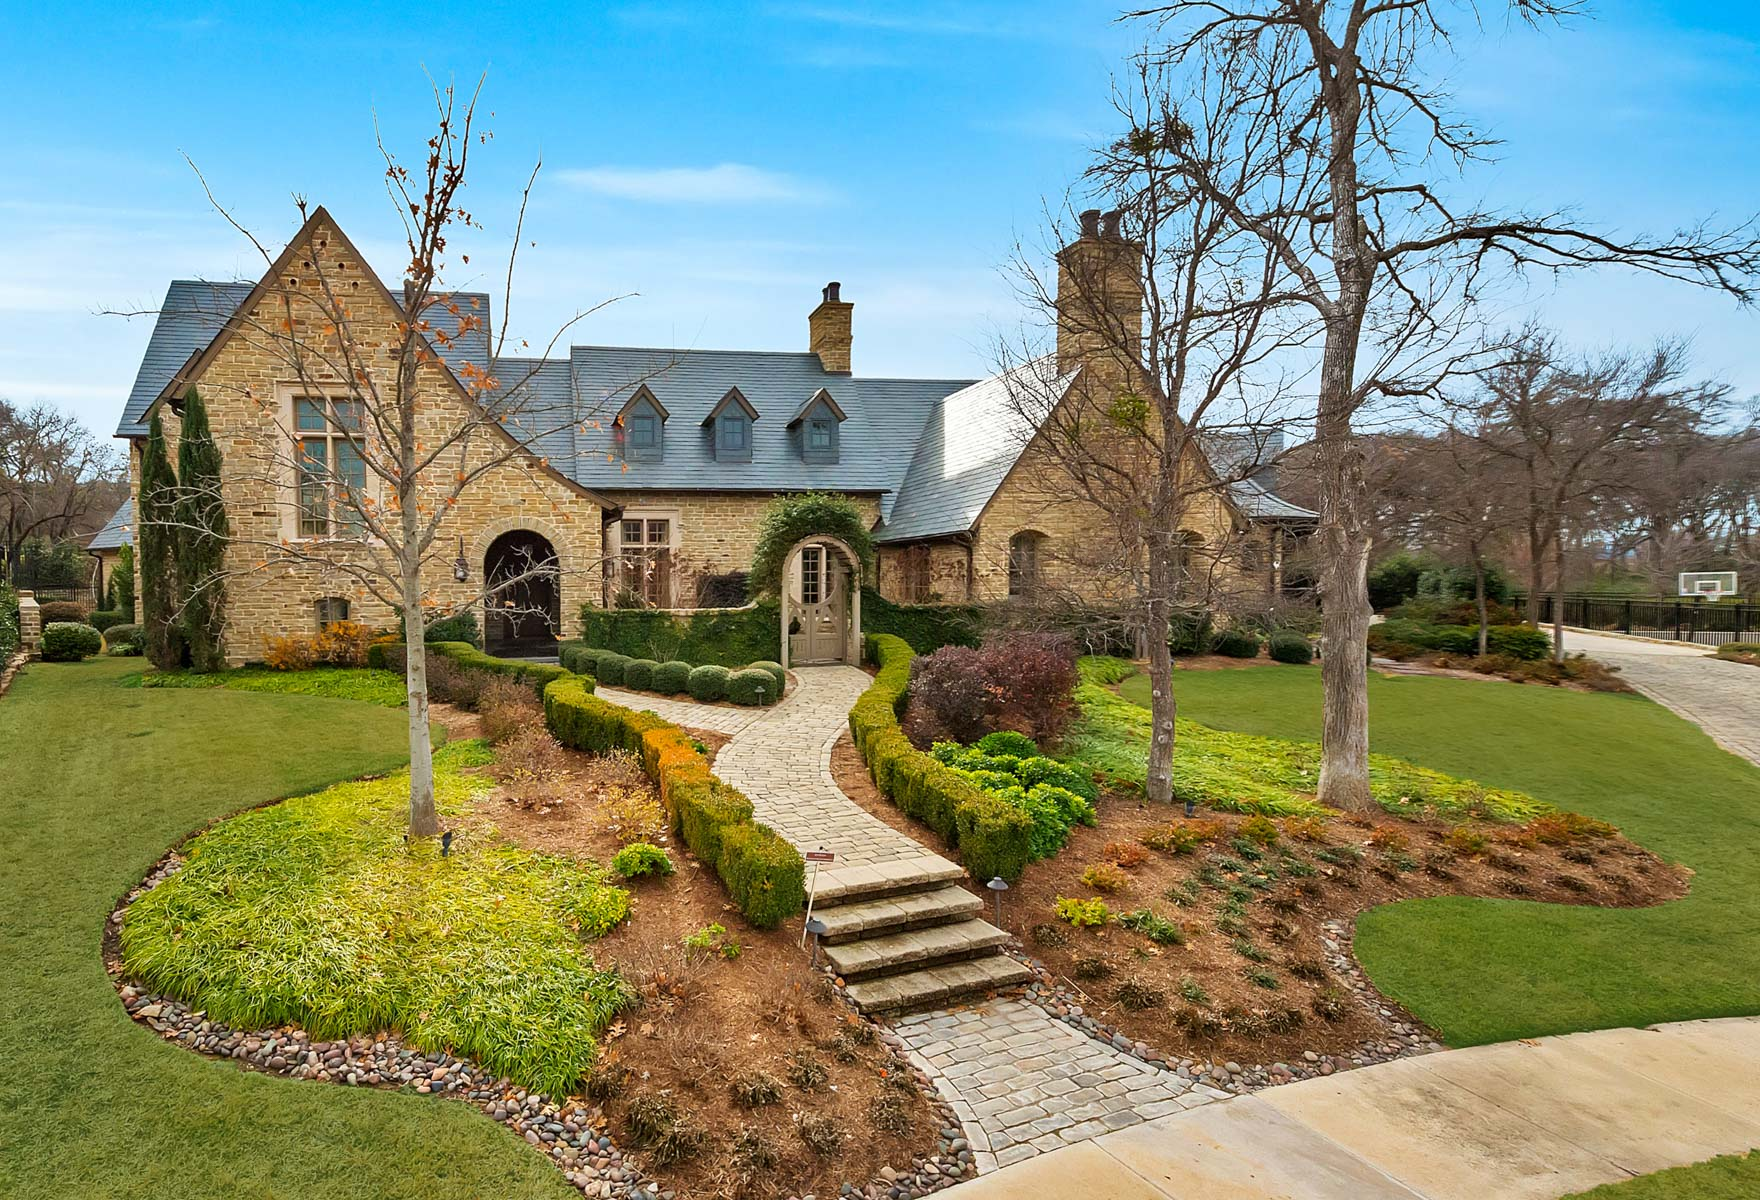 Villa per Vendita alle ore Stunning Two-Story English Cotswold Manor 3640 Middlewood Drive Fort Worth, Texas, 76109 Stati Uniti